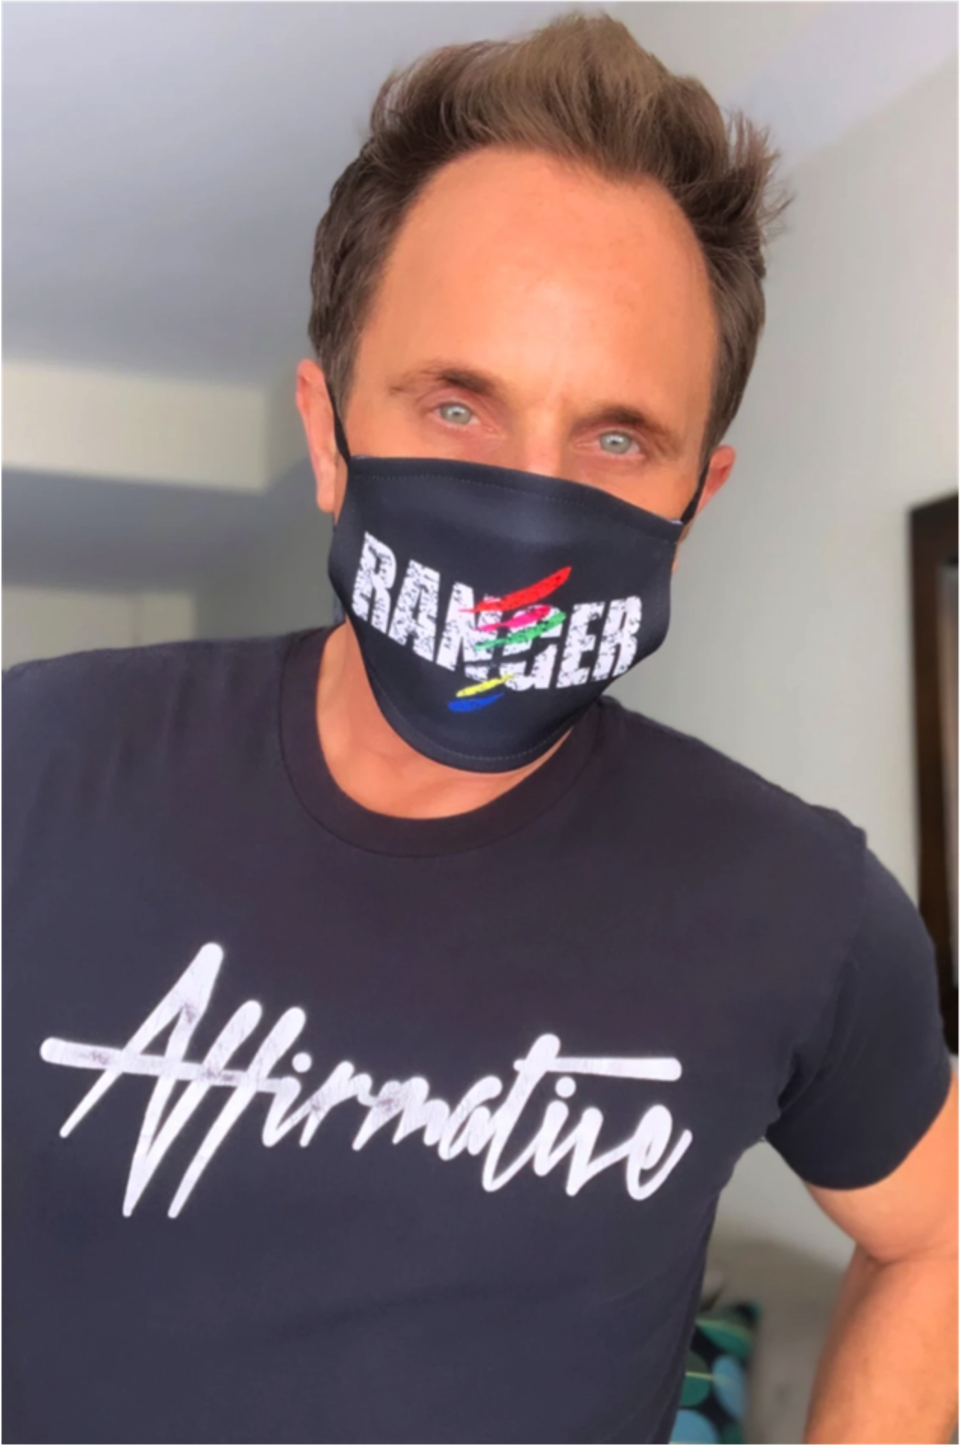 David Yost wearing an Affirmative Clothing Company t-shirt and face mask